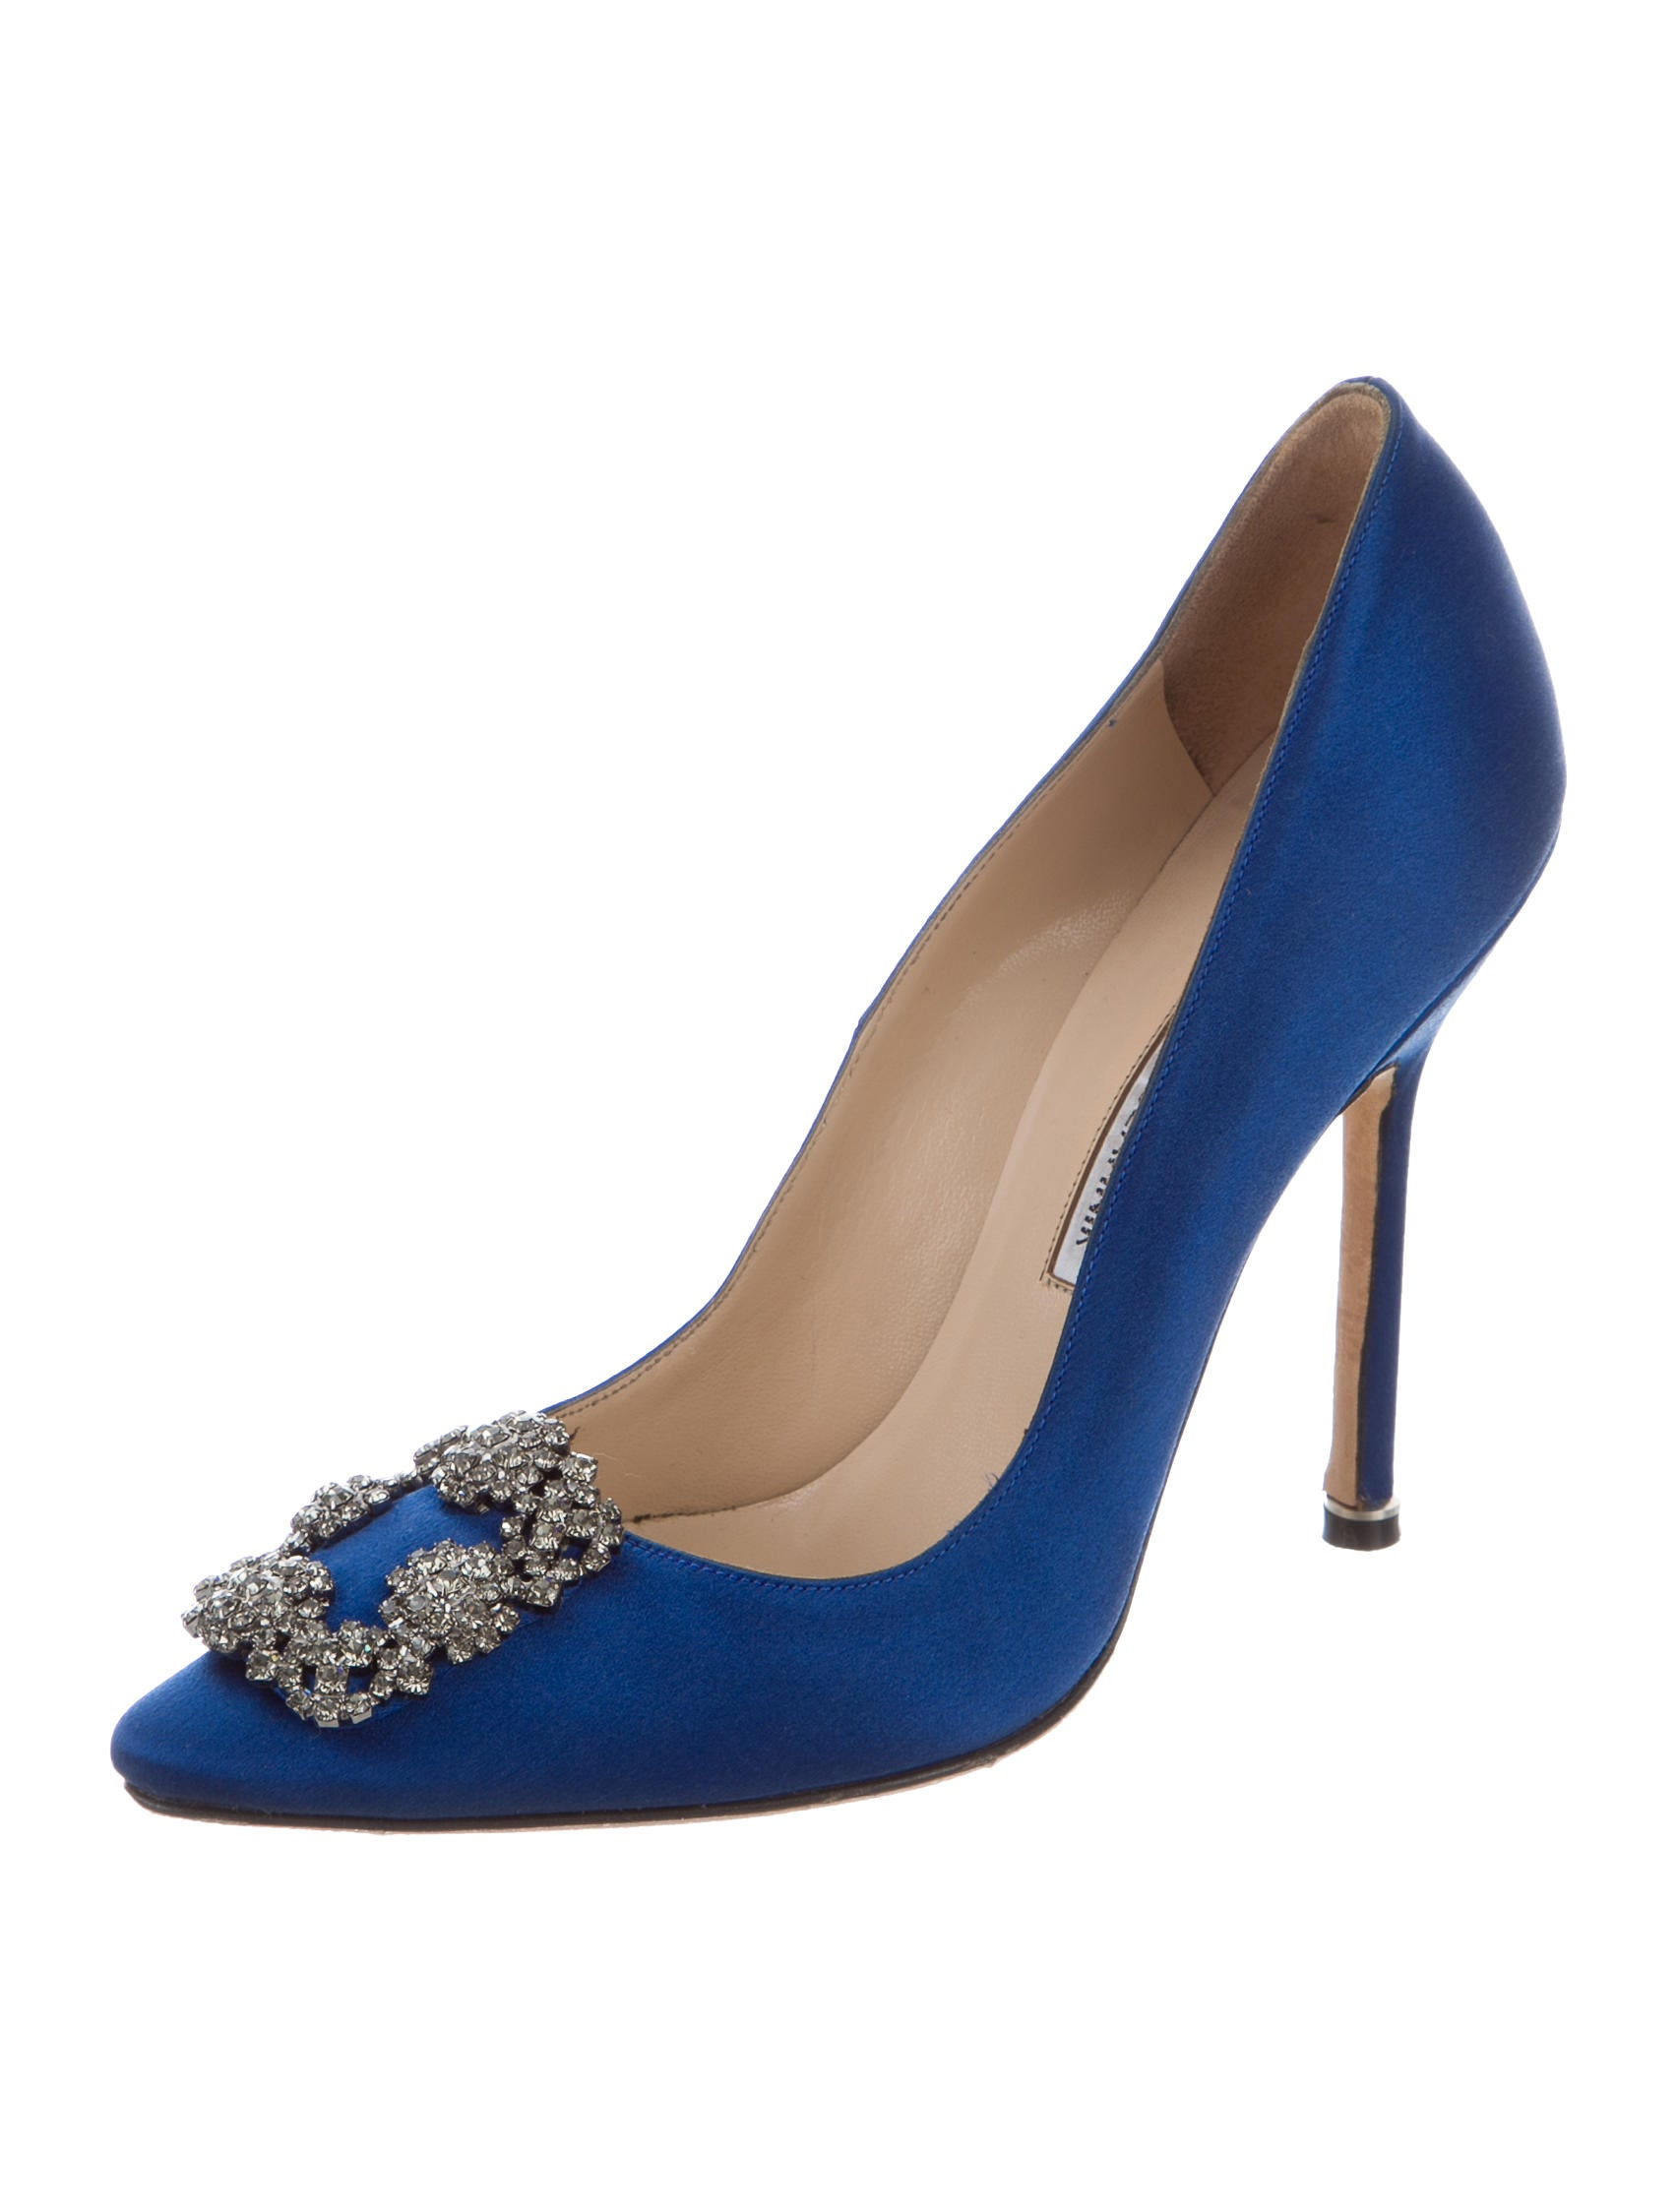 Manolo blahnik embellished hangisi pumps shoes for Shoes by manolo blahnik